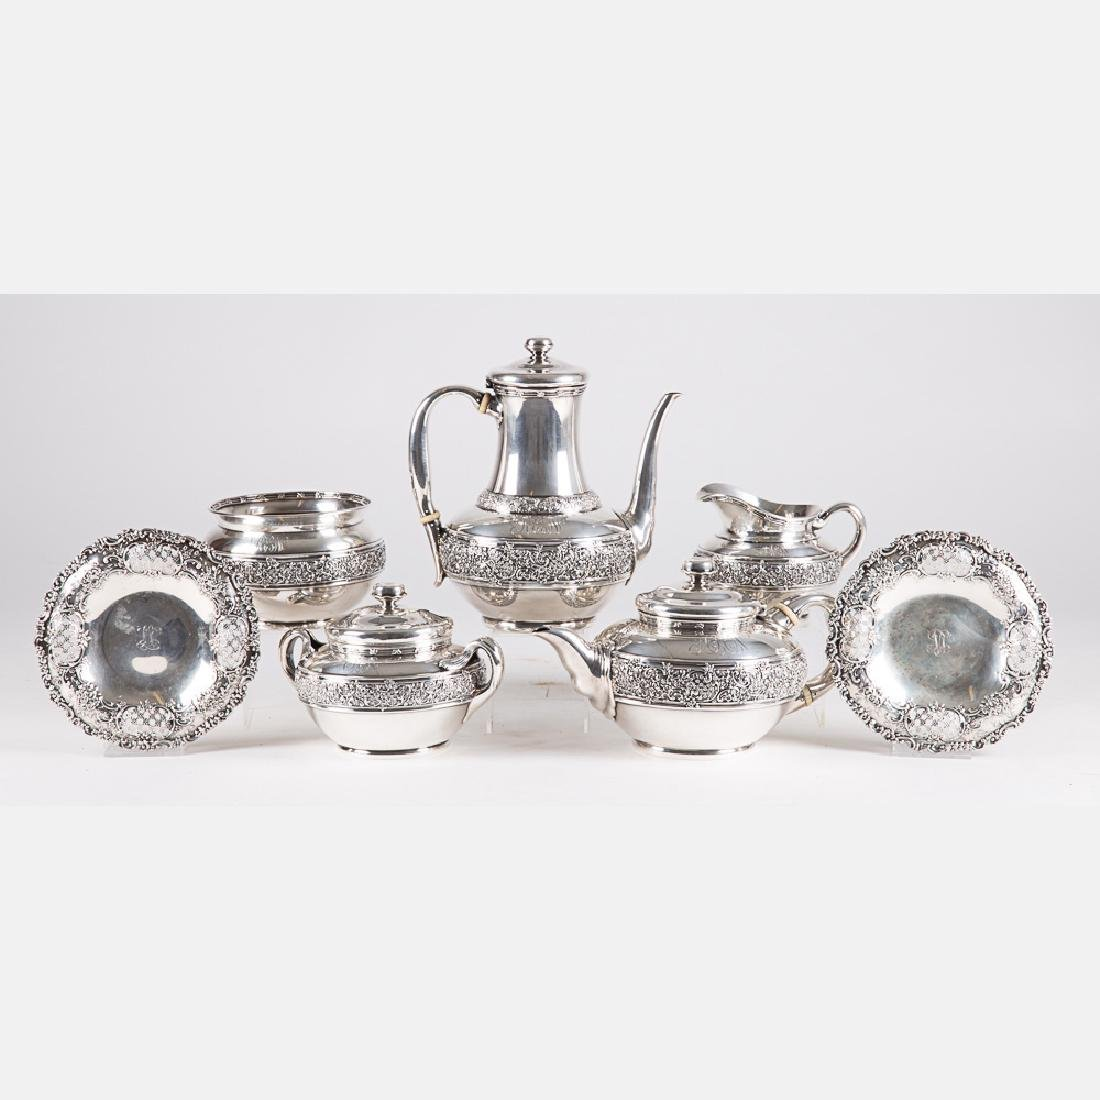 A Tiffany & Company Sterling Silver Seven Piece Coffee